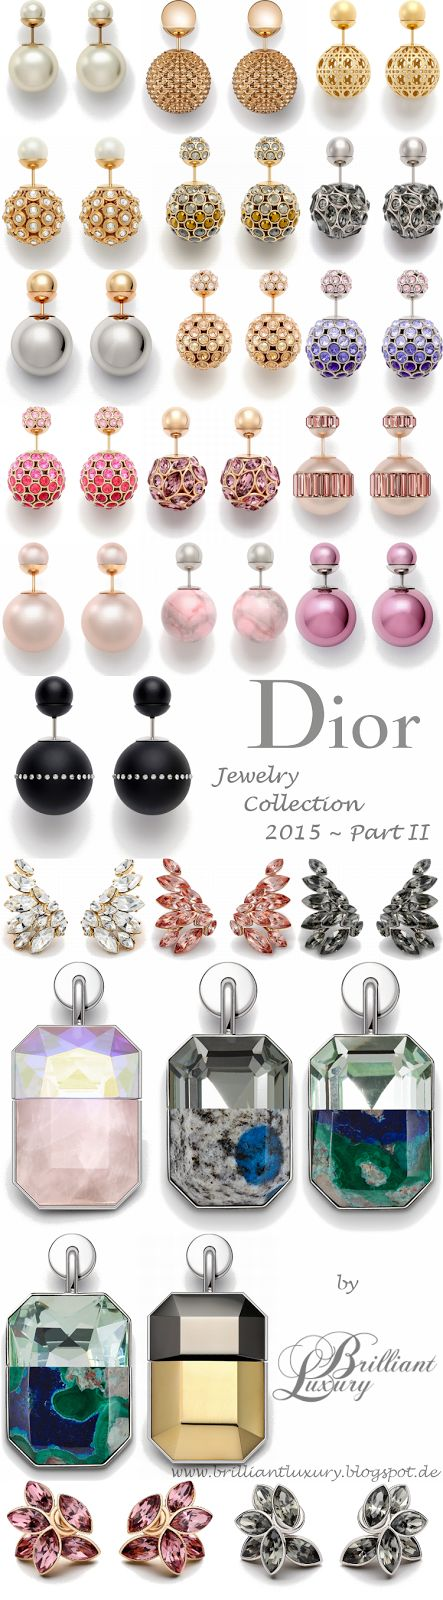 Brilliant Luxury * Dior Jewelry Collection 2015 ~ Part II